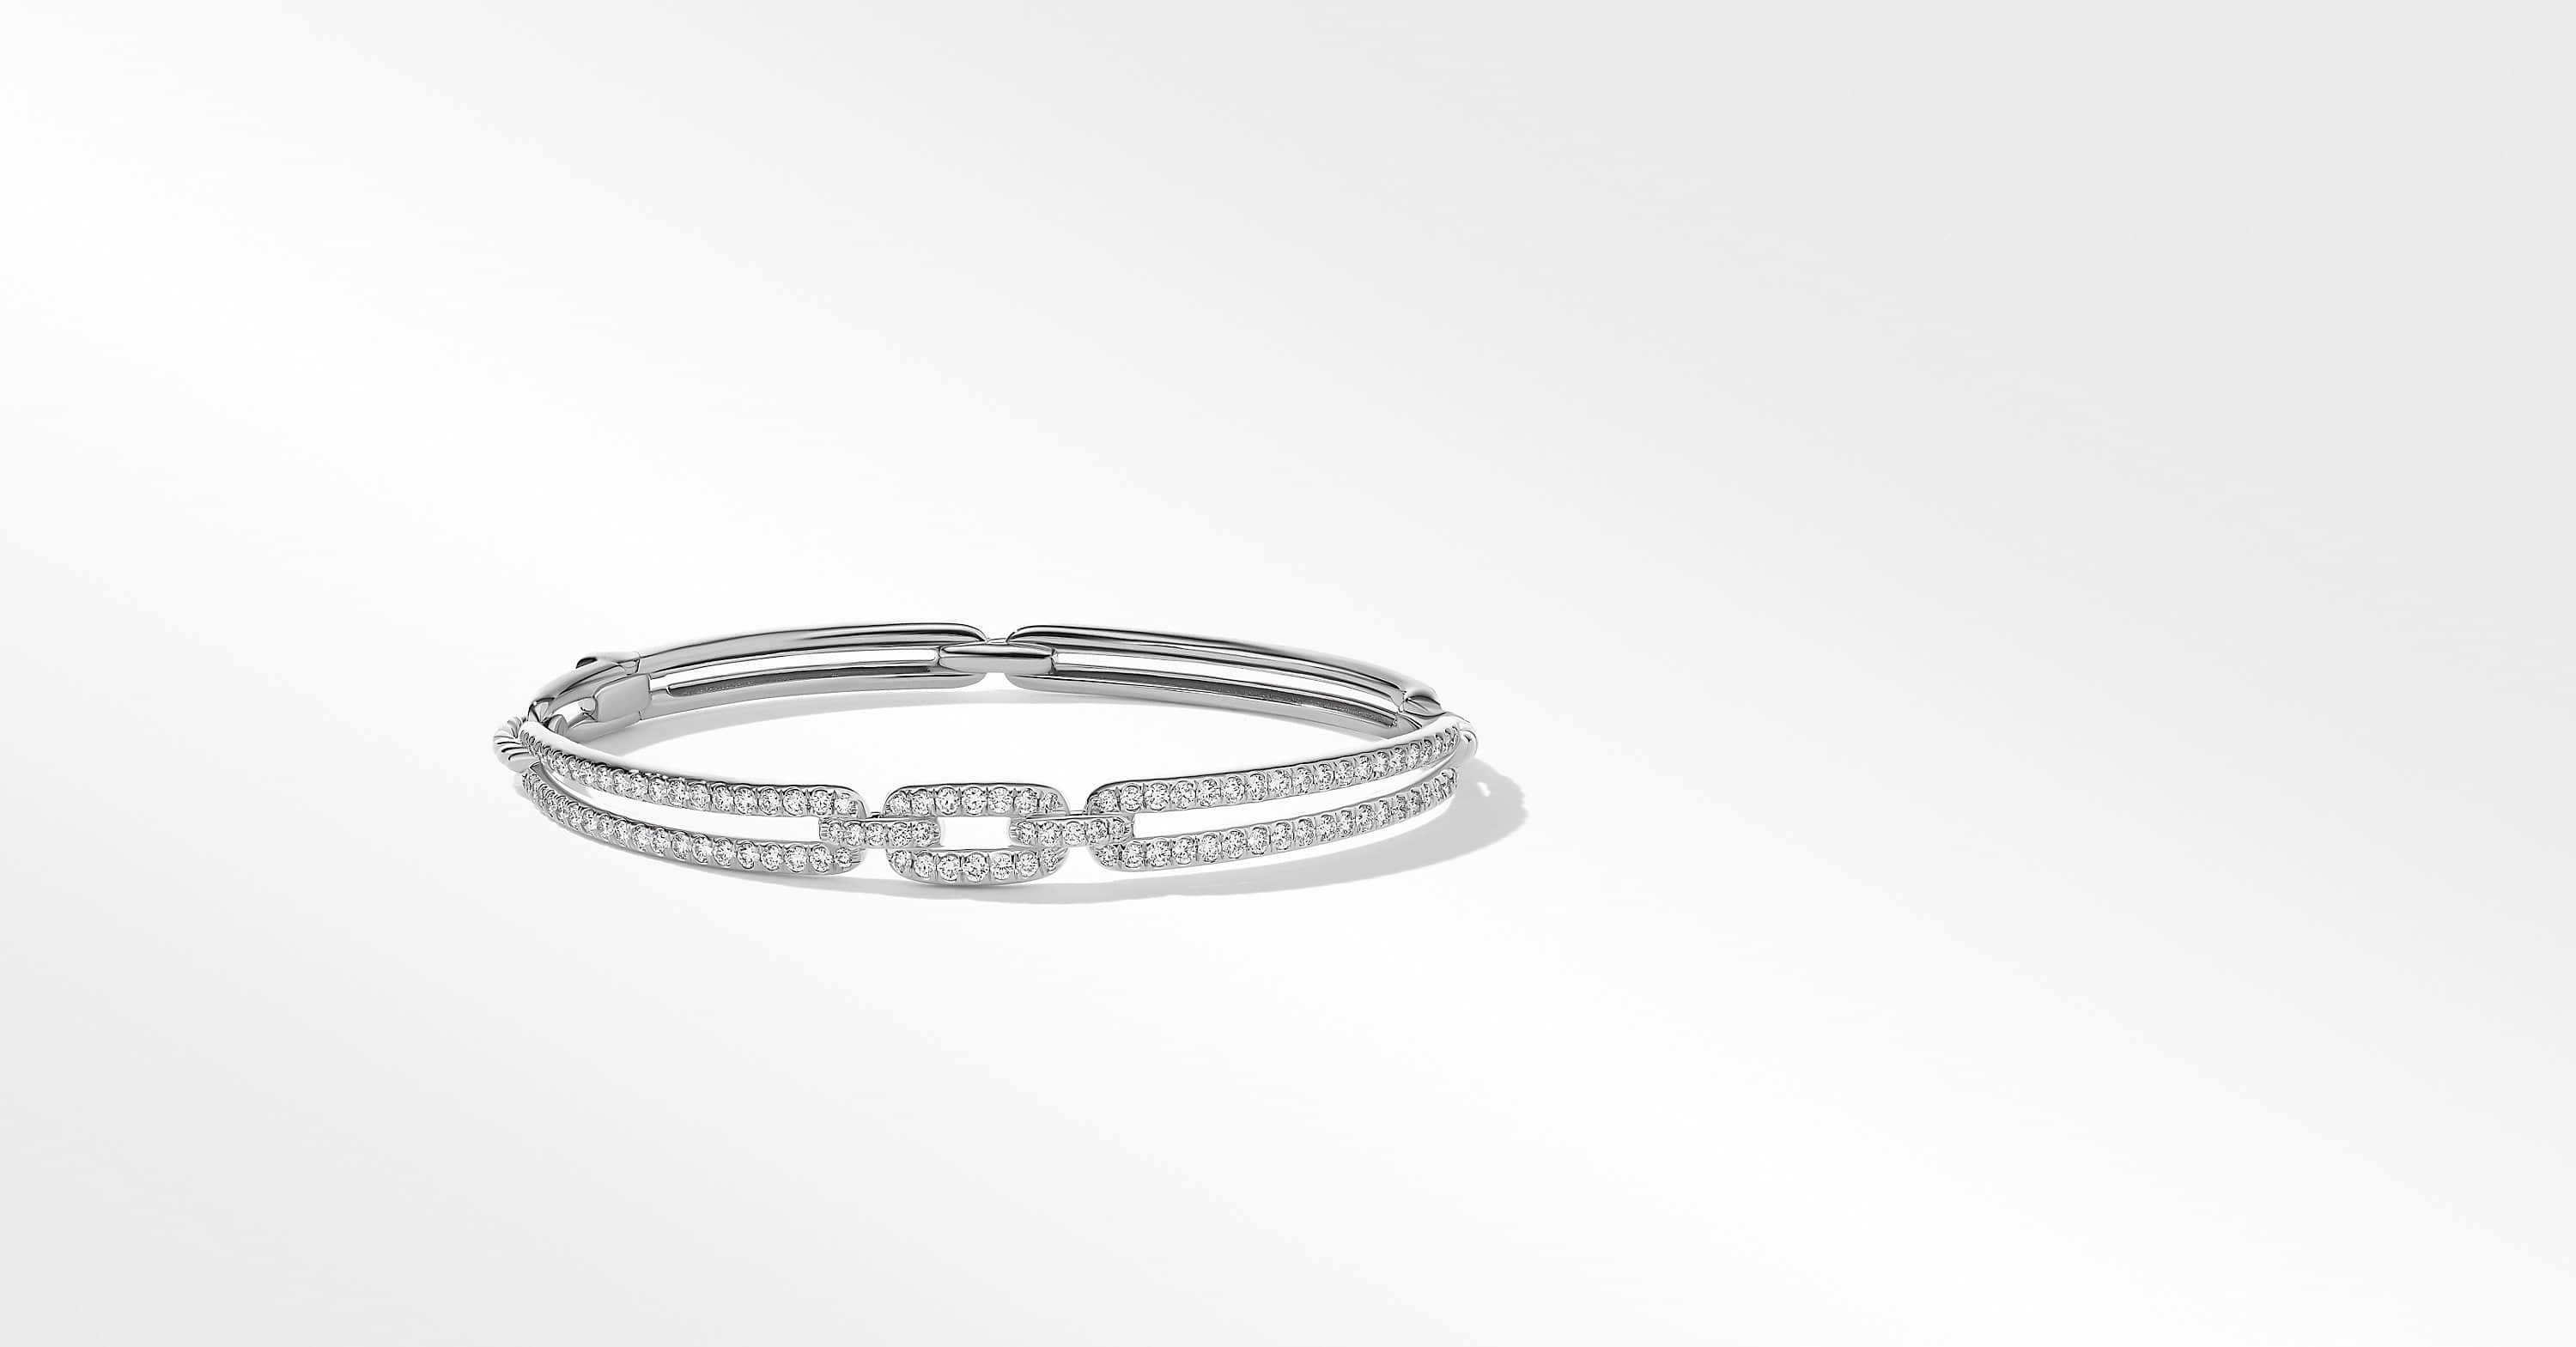 Stax Linked Bracelet in 18K White Gold with Diamonds, 7mm